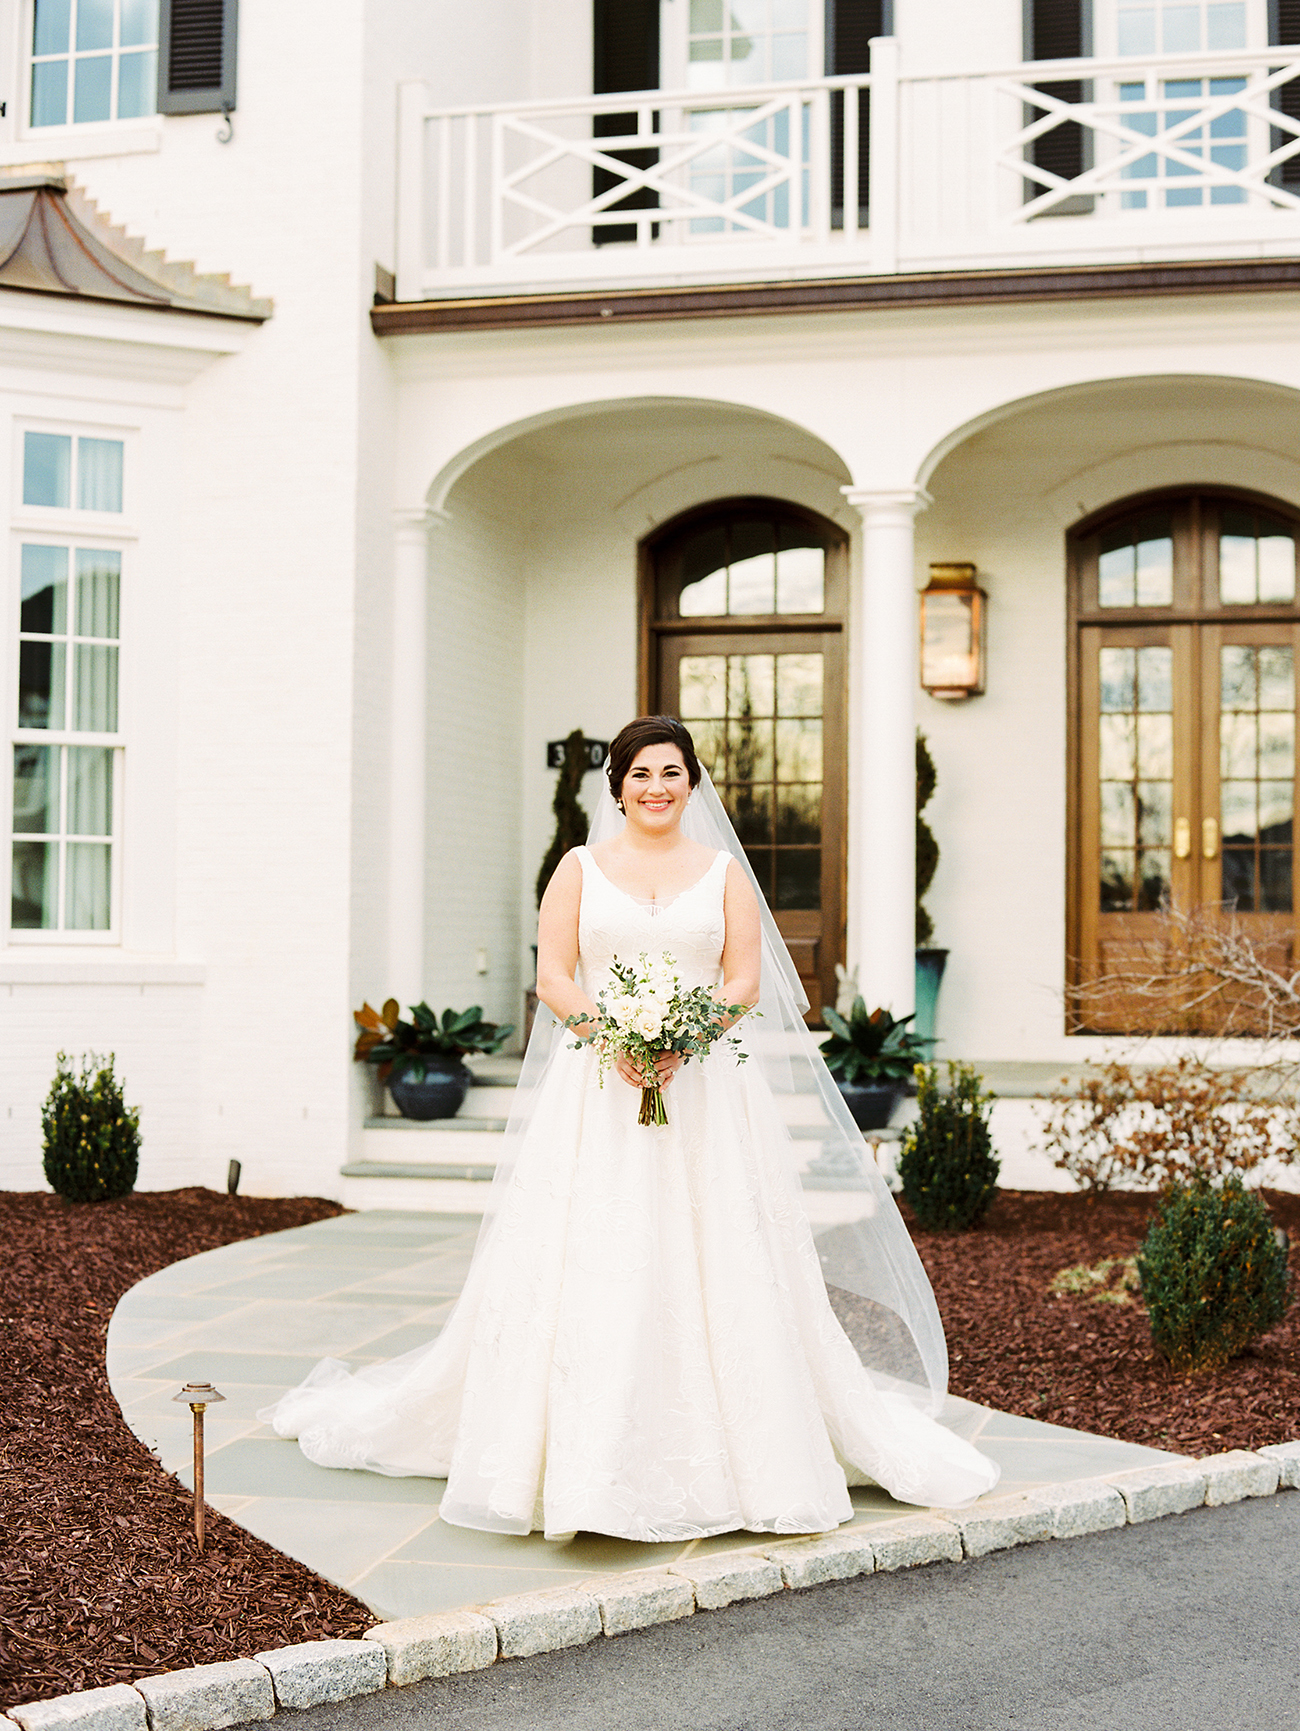 nrp-nancy-ashleydavisbridals-2015